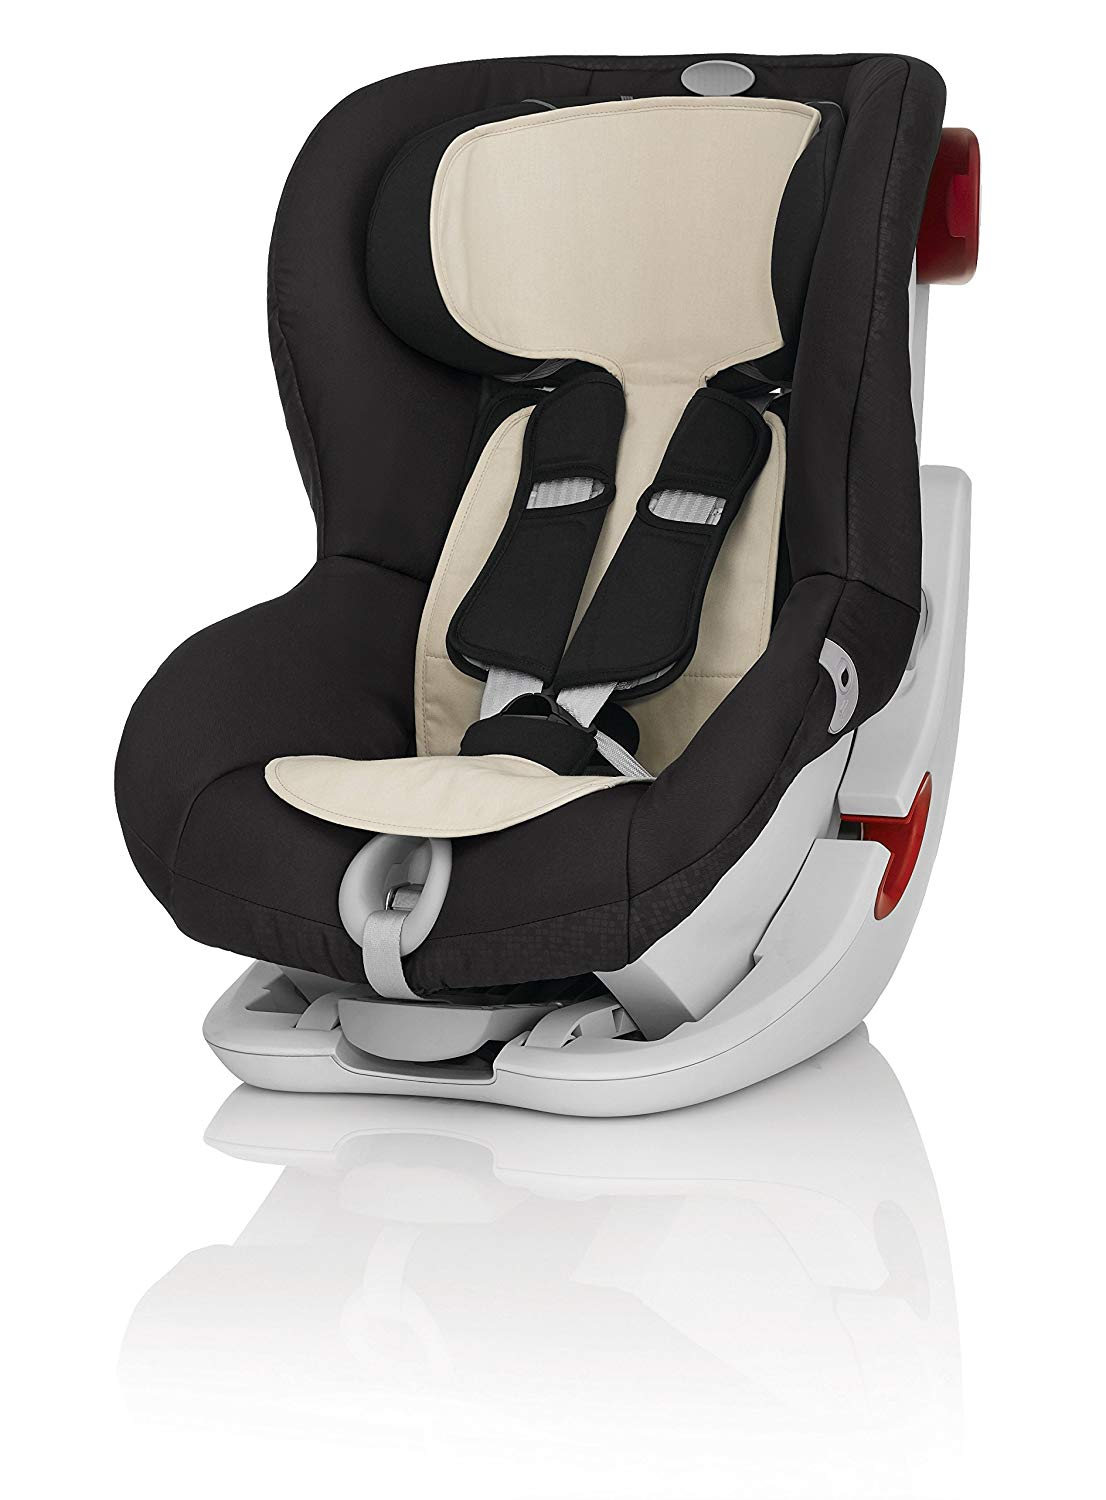 Britax Car Seat Girl Kids Products Car Seats And Accesories Covers For